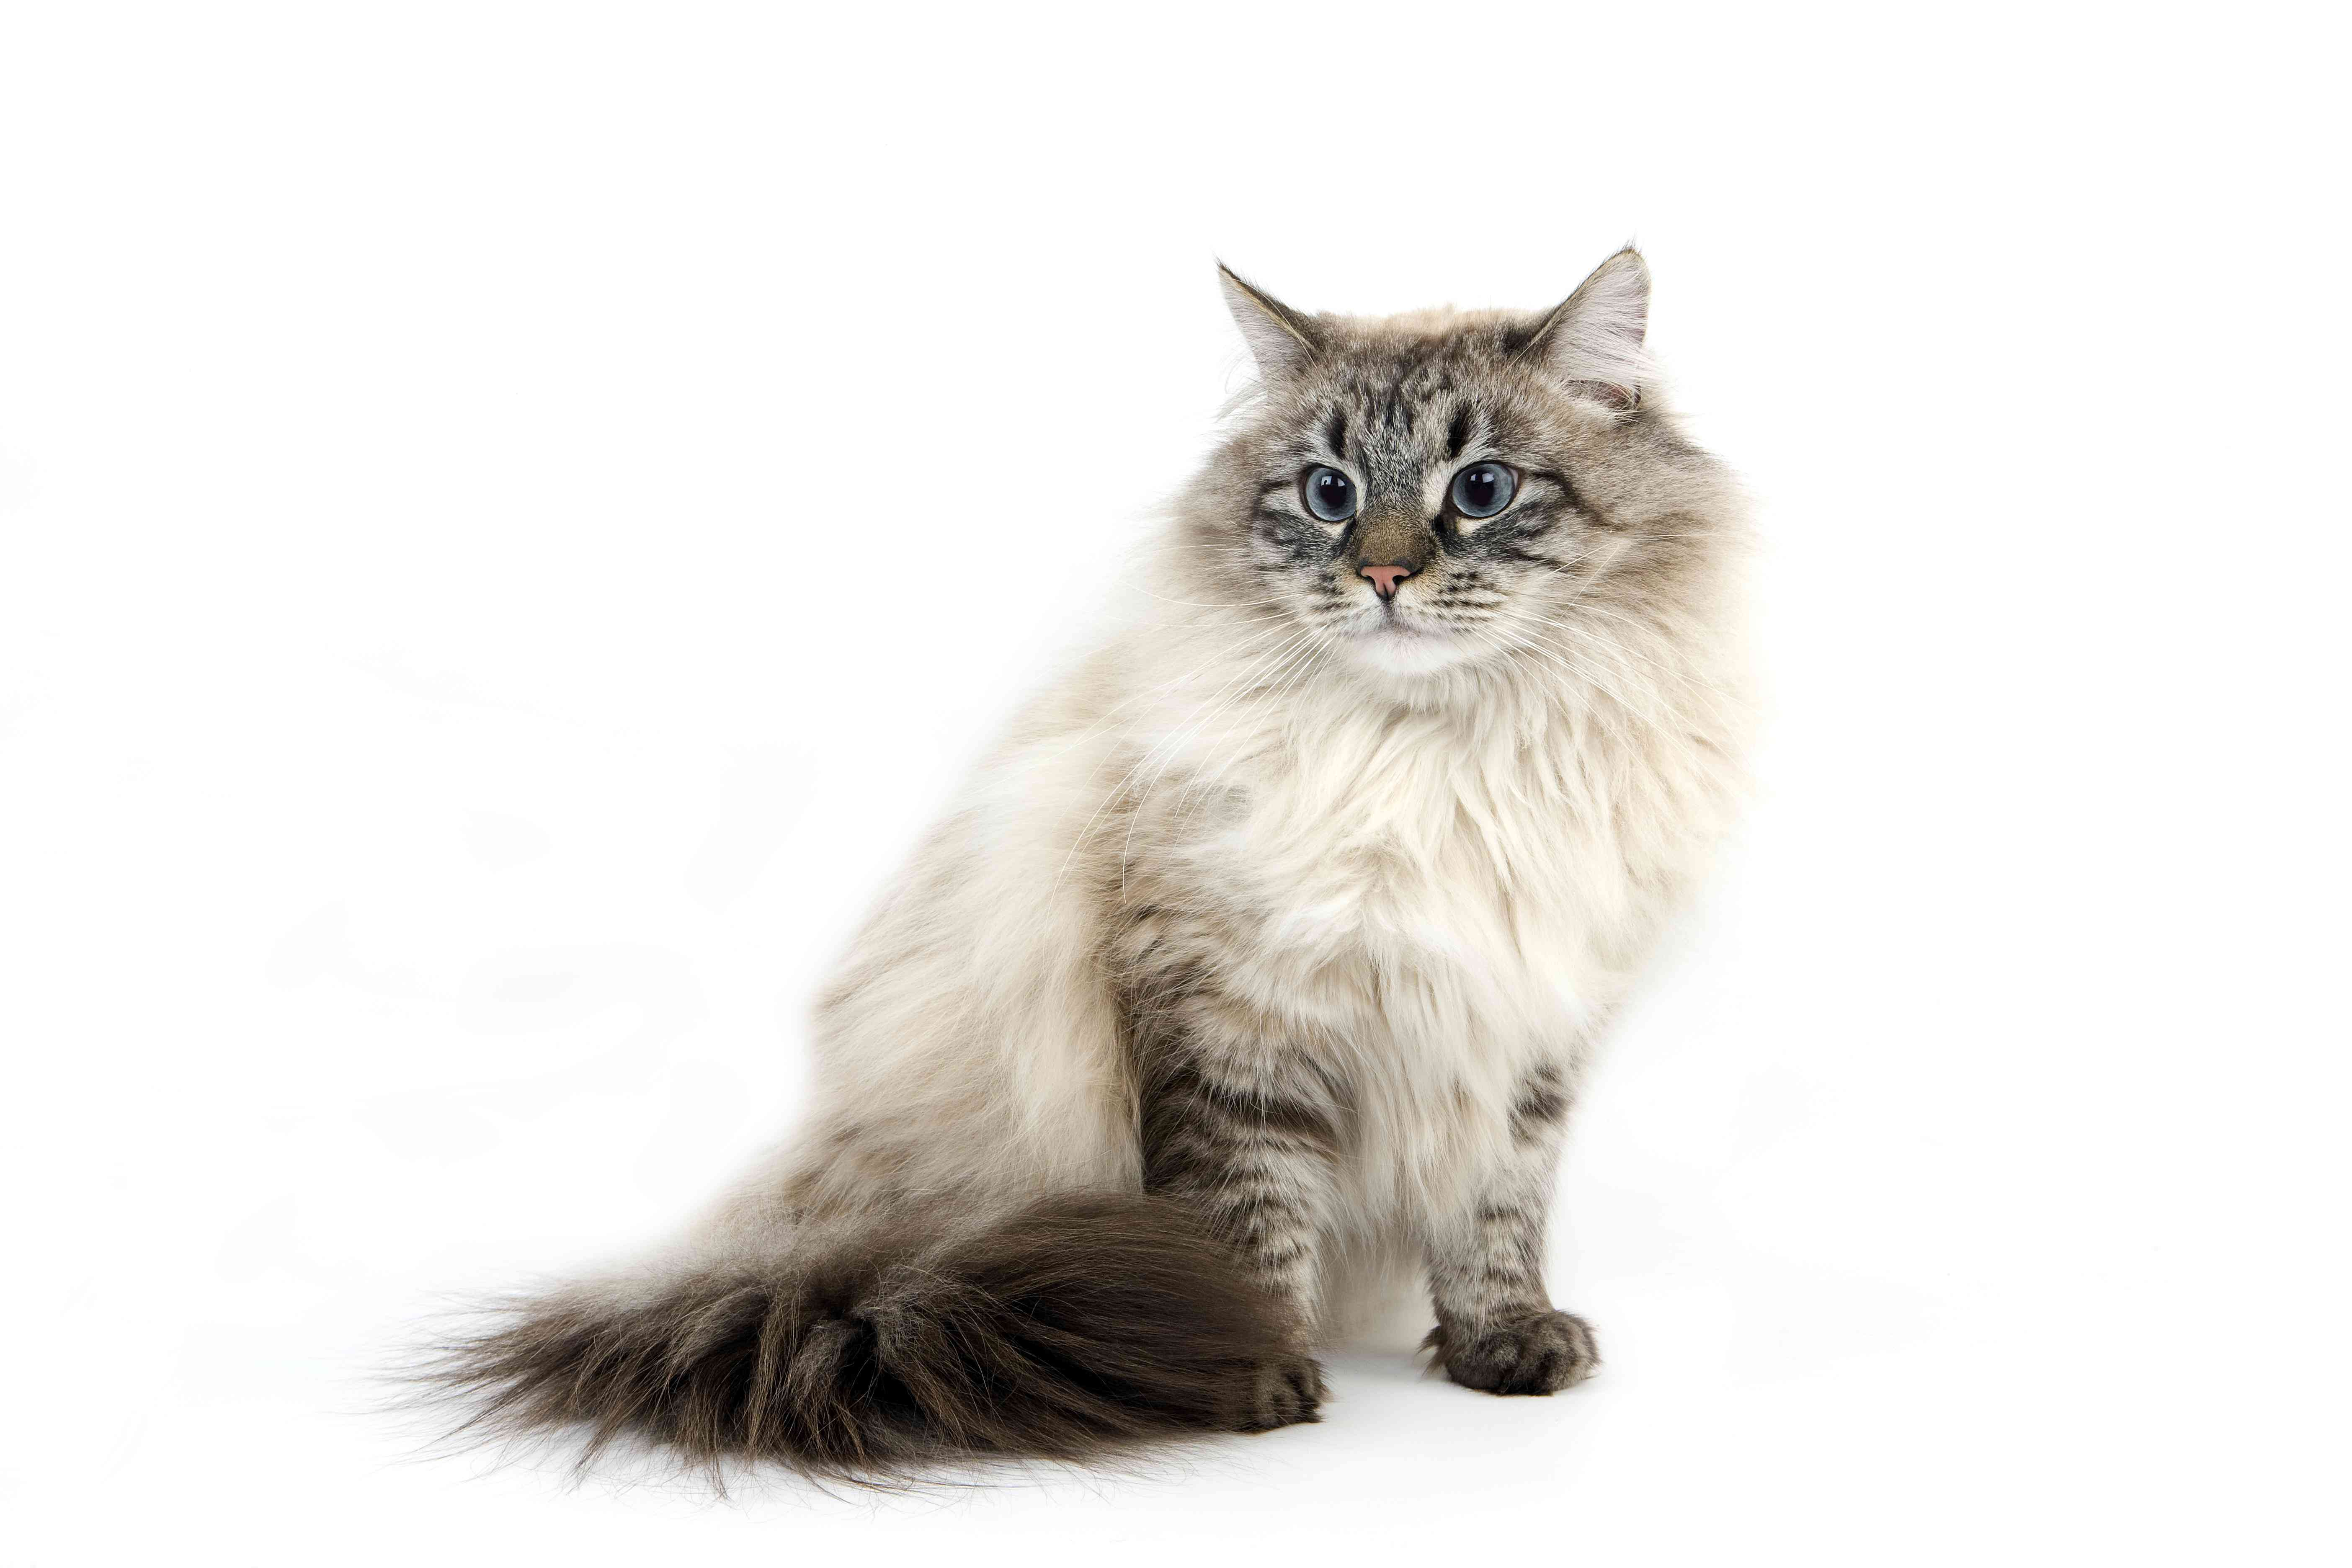 Seal Tabby Point Neva Masquerade Siberian Domestic Cat, Male sitting against White Background